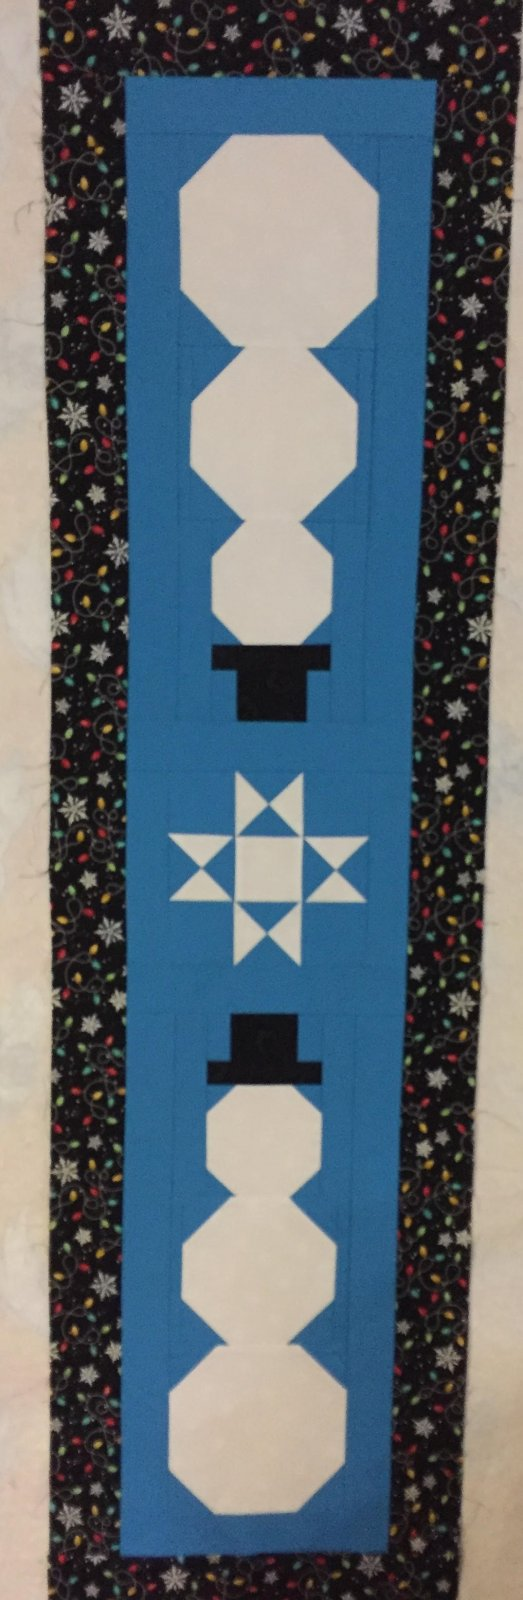 Snowman Table Runner Top